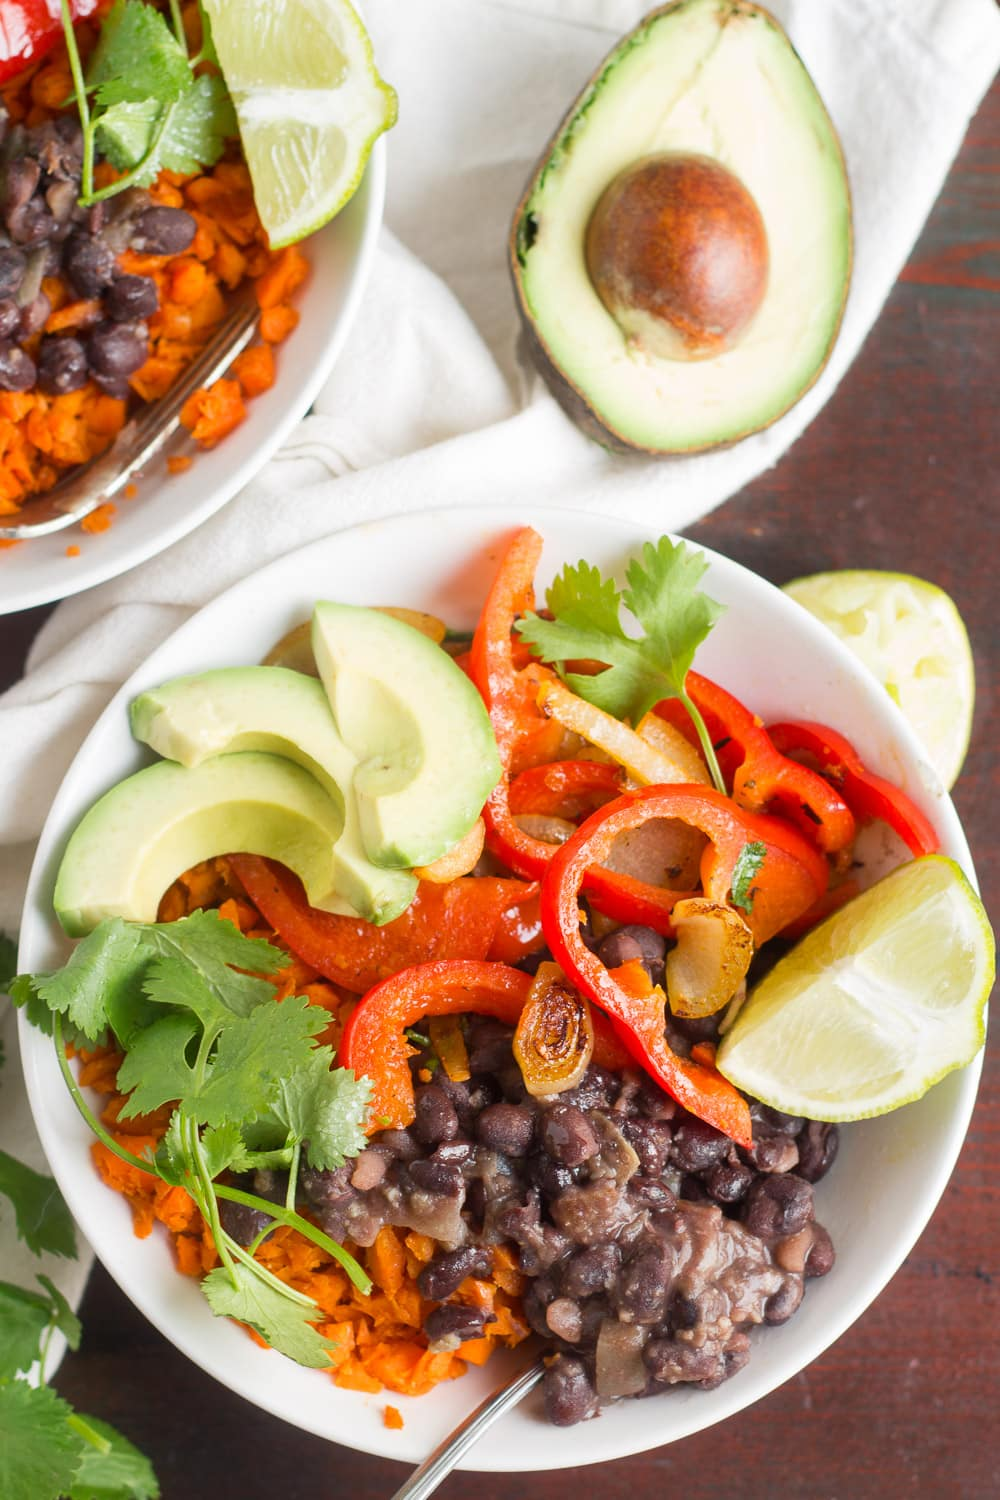 Lightened-Up Black Bean Burrito Bowls with Carrot Rice